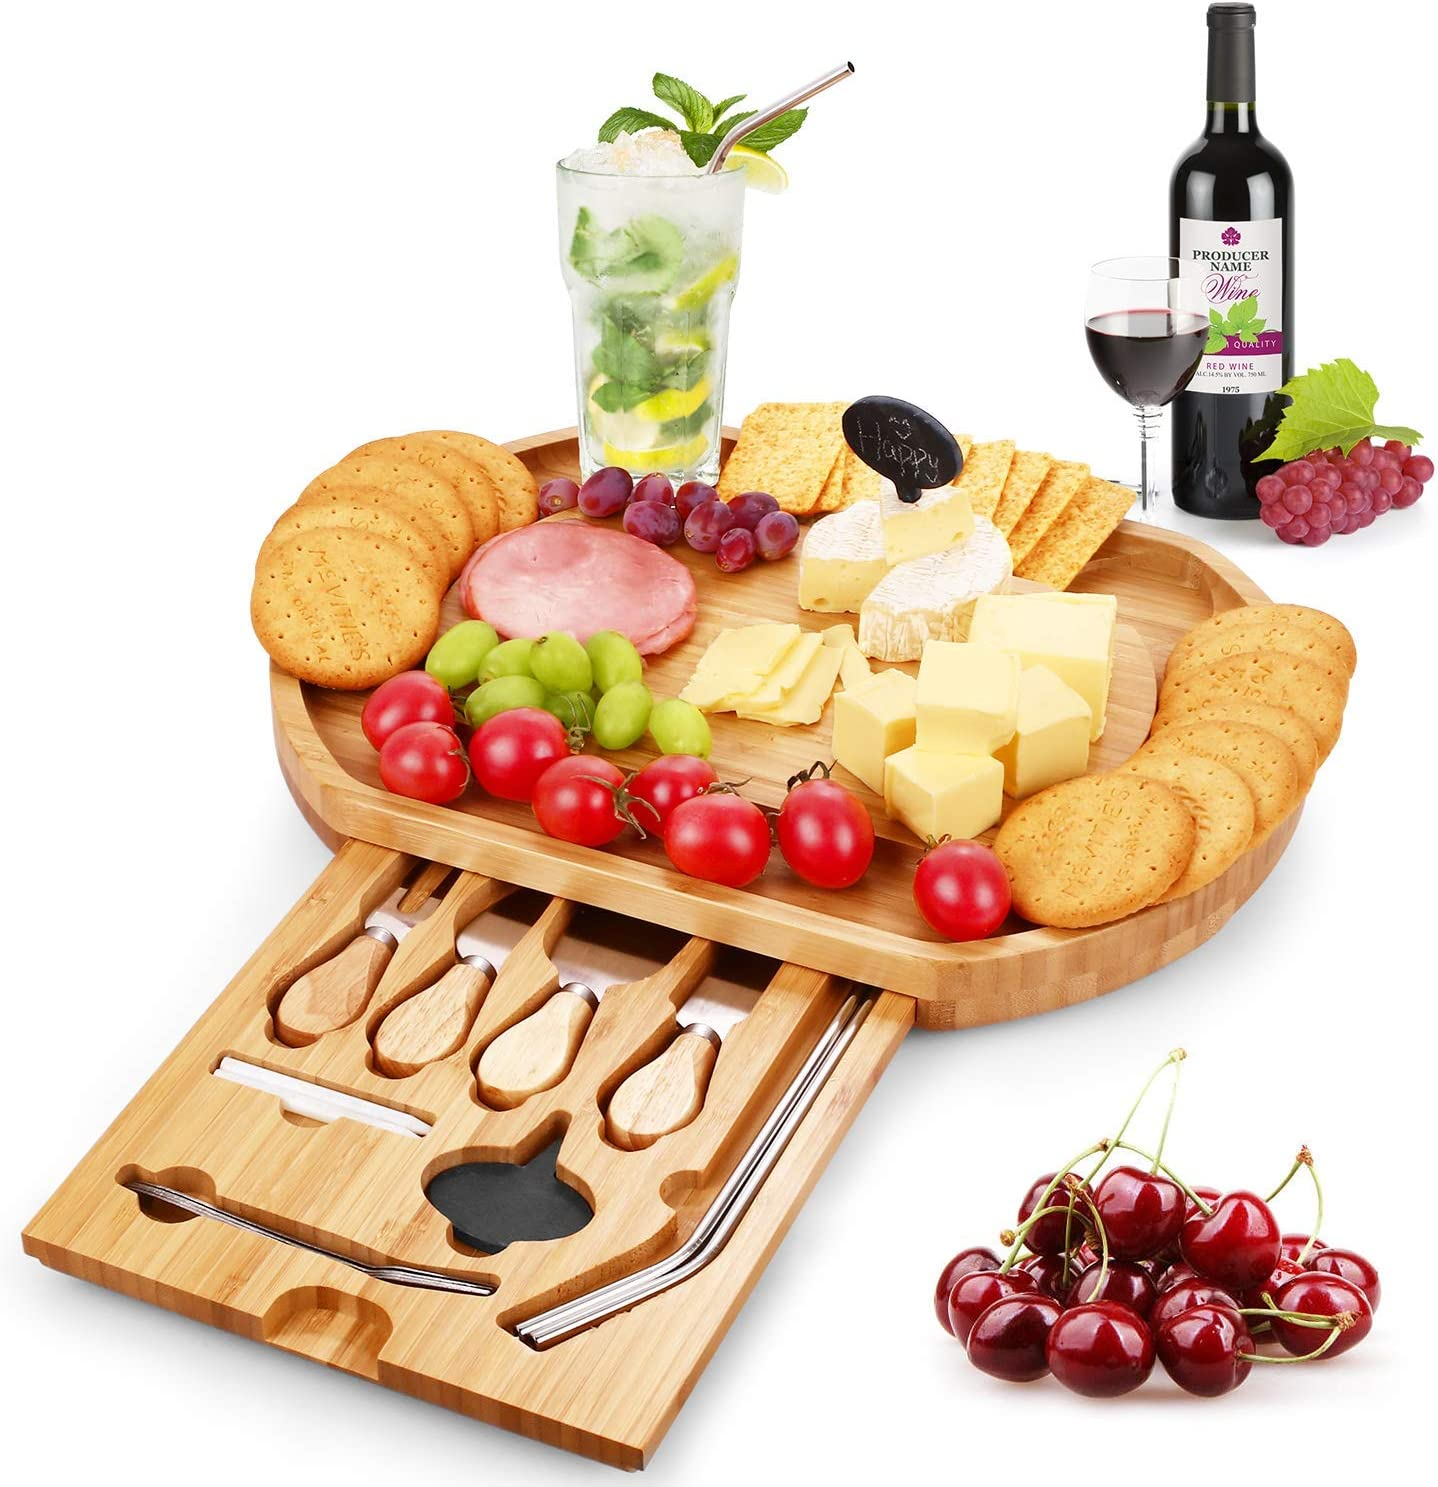 Duerer Cheese Board Set, Meat and Cheese Tray With Cutlery In Slide-Out Drawer - Bamboo Charcuterie Platter for Crackers, Brie and Meat - Best Gift for Christmas, Valentine, Birthday (Include Straws)